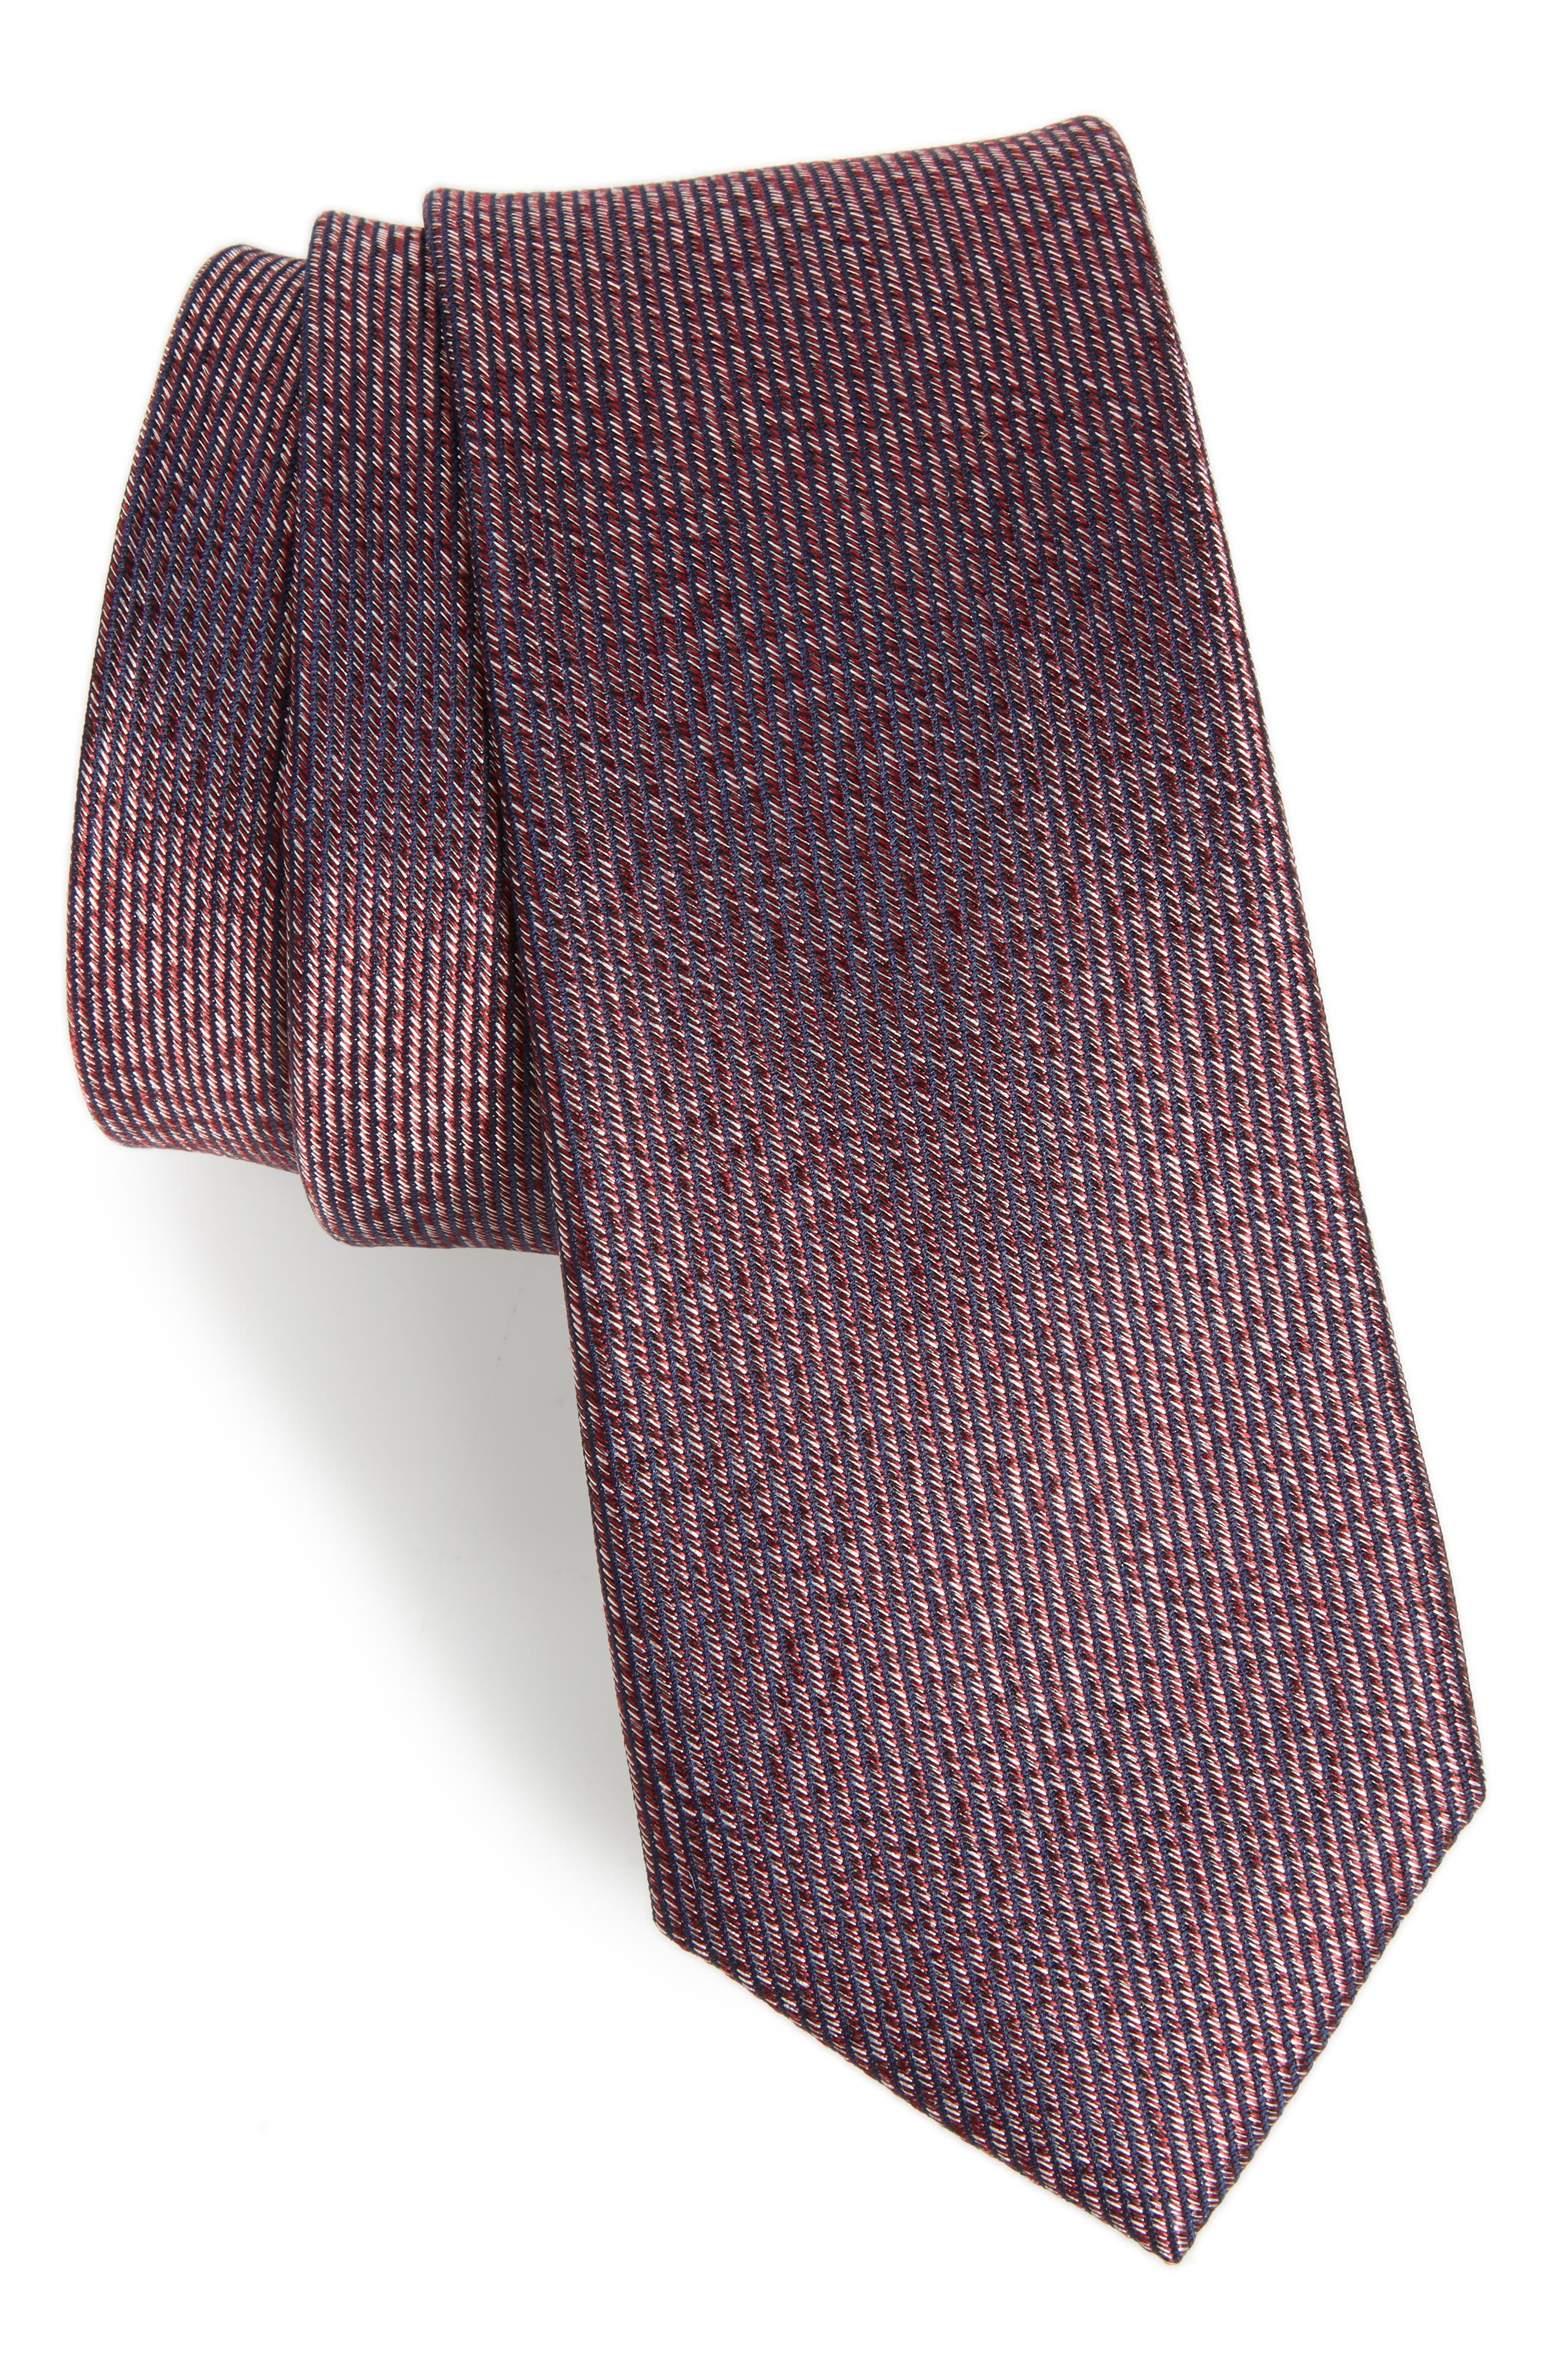 Calibrate Heathered Solid Silk Tie